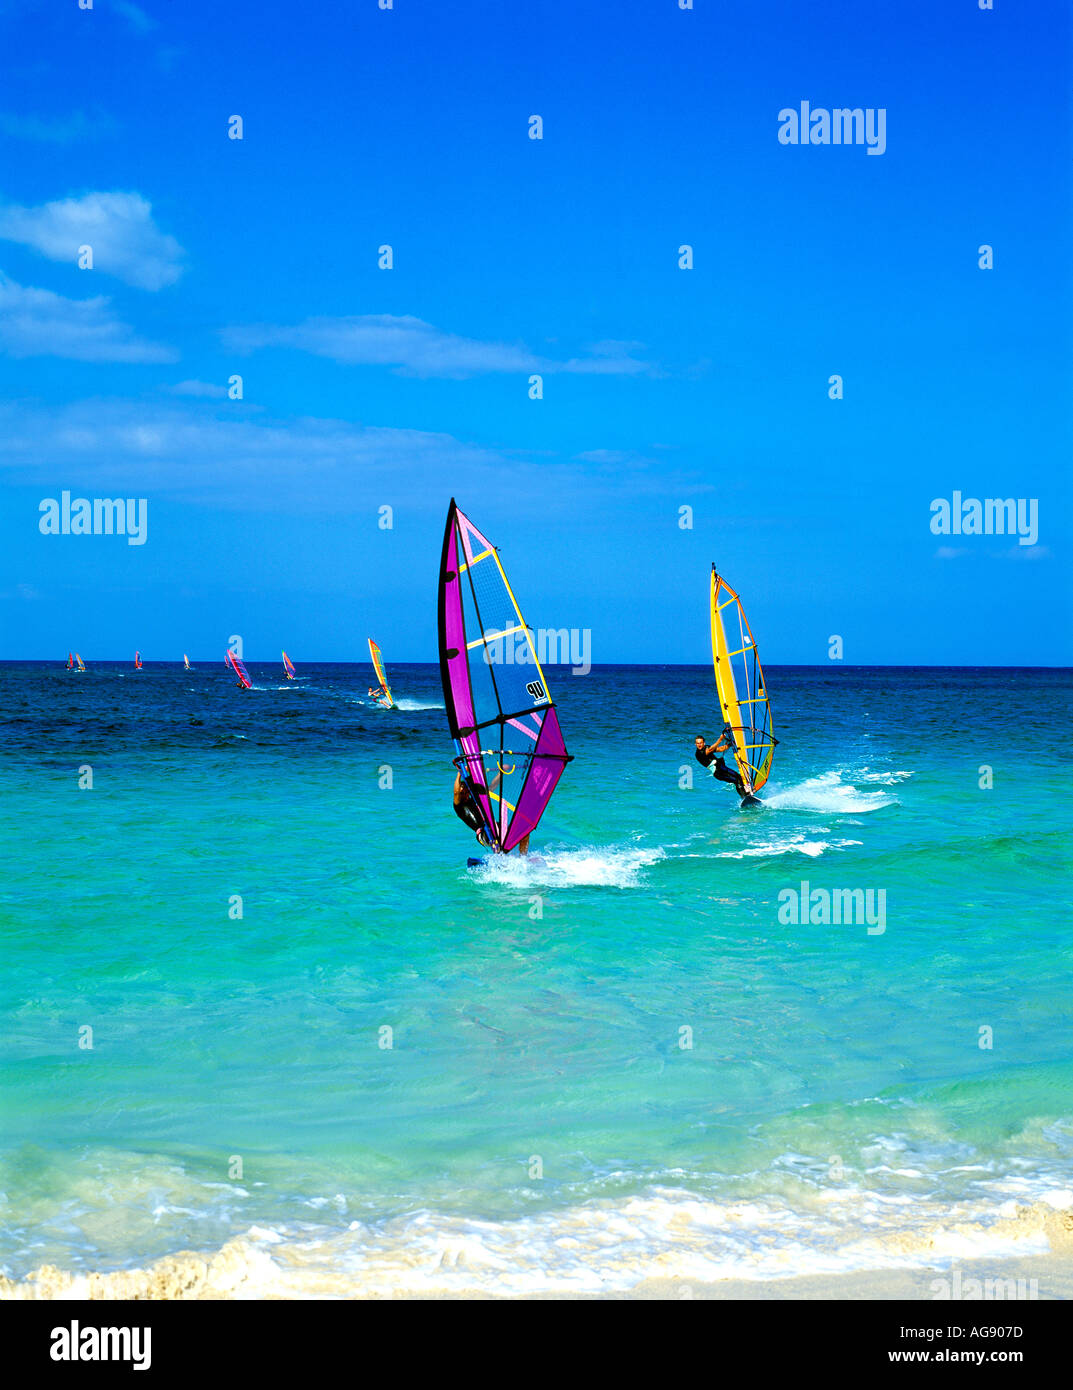 Water Sports, Windsurfing - Stock Image